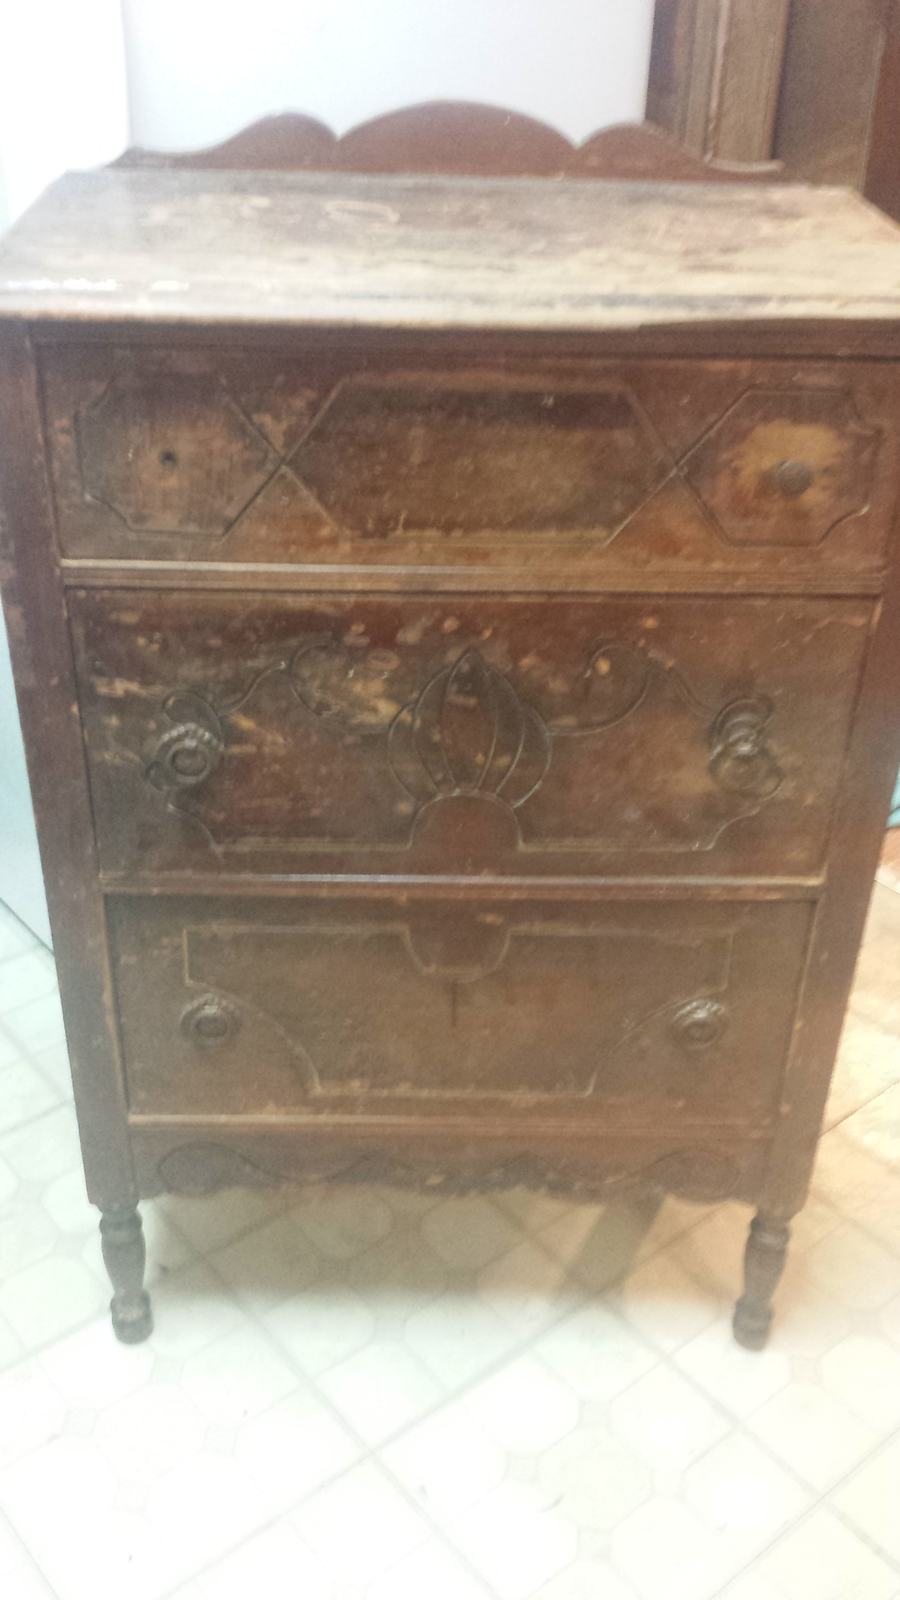 3 Drawer Chest Would Like To Know The Year Wood Etc And Value If Any My Antique Furniture